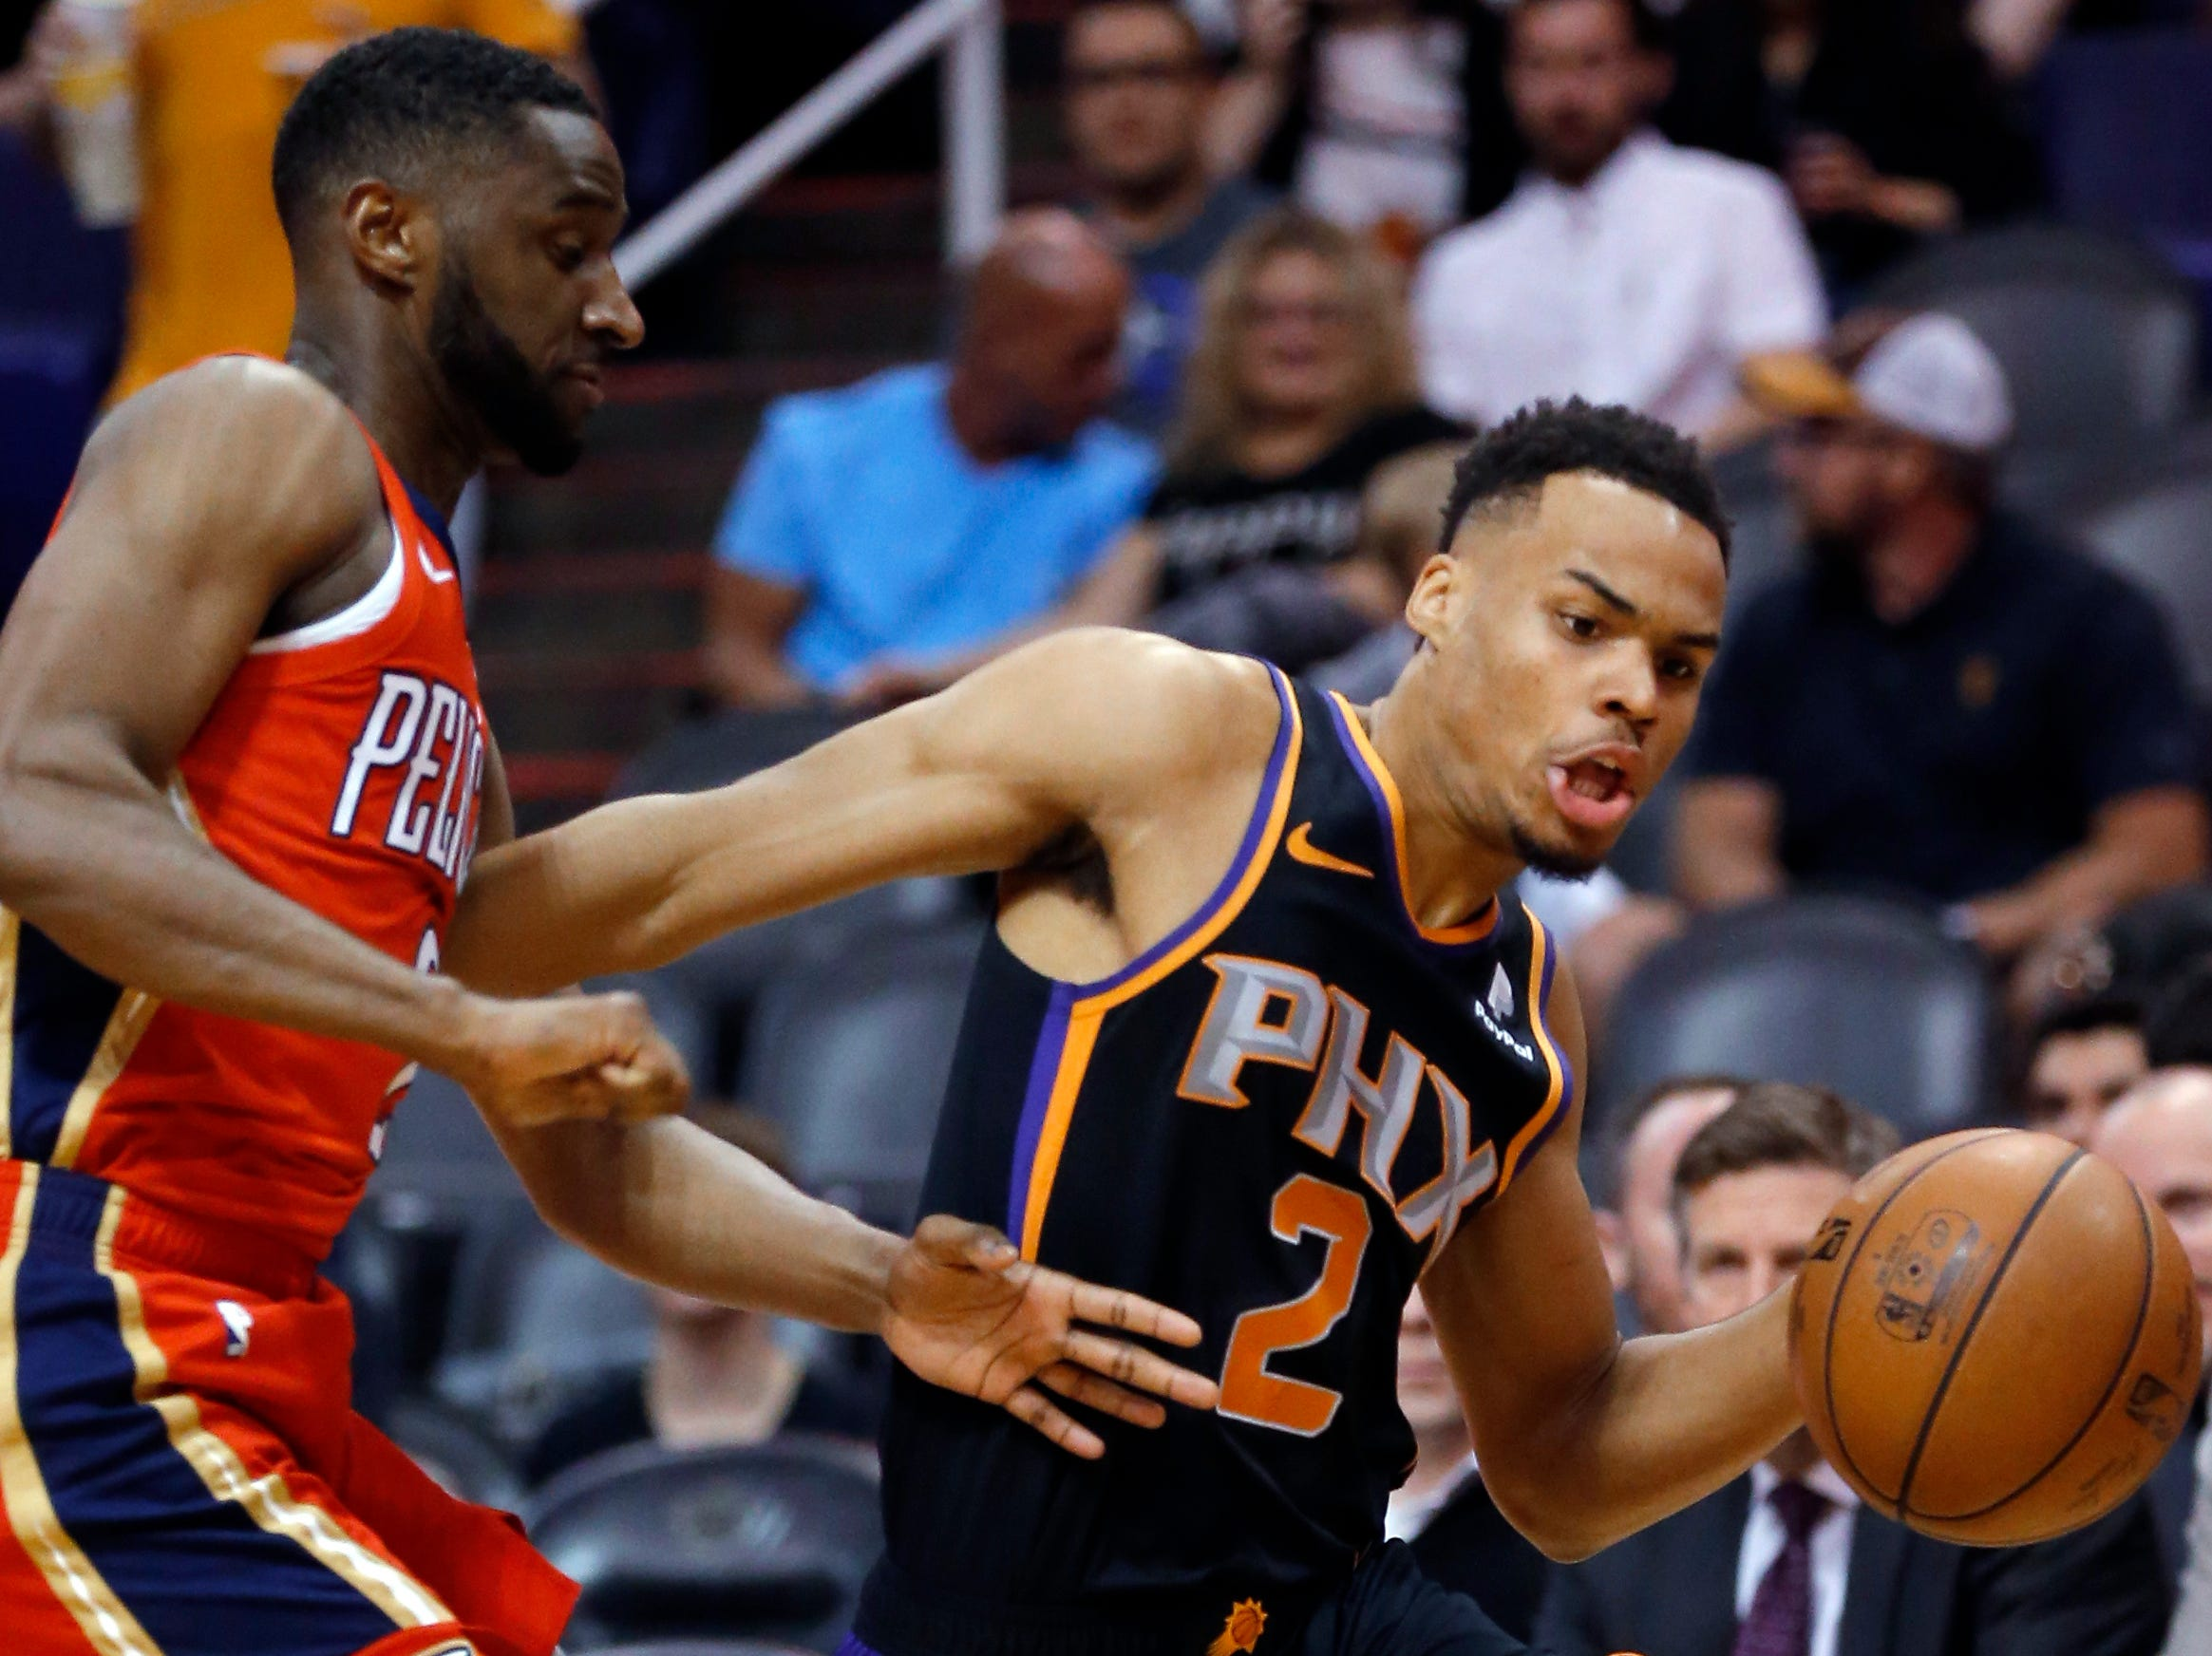 Phoenix Suns guard Elie Okobo (2) drives around New Orleans Pelicans guard Ian Clark during the second half of an NBA basketball game Friday, April 5, 2019, in Phoenix. The Suns won 133-126 in overtime. (AP Photo/Rick Scuteri)